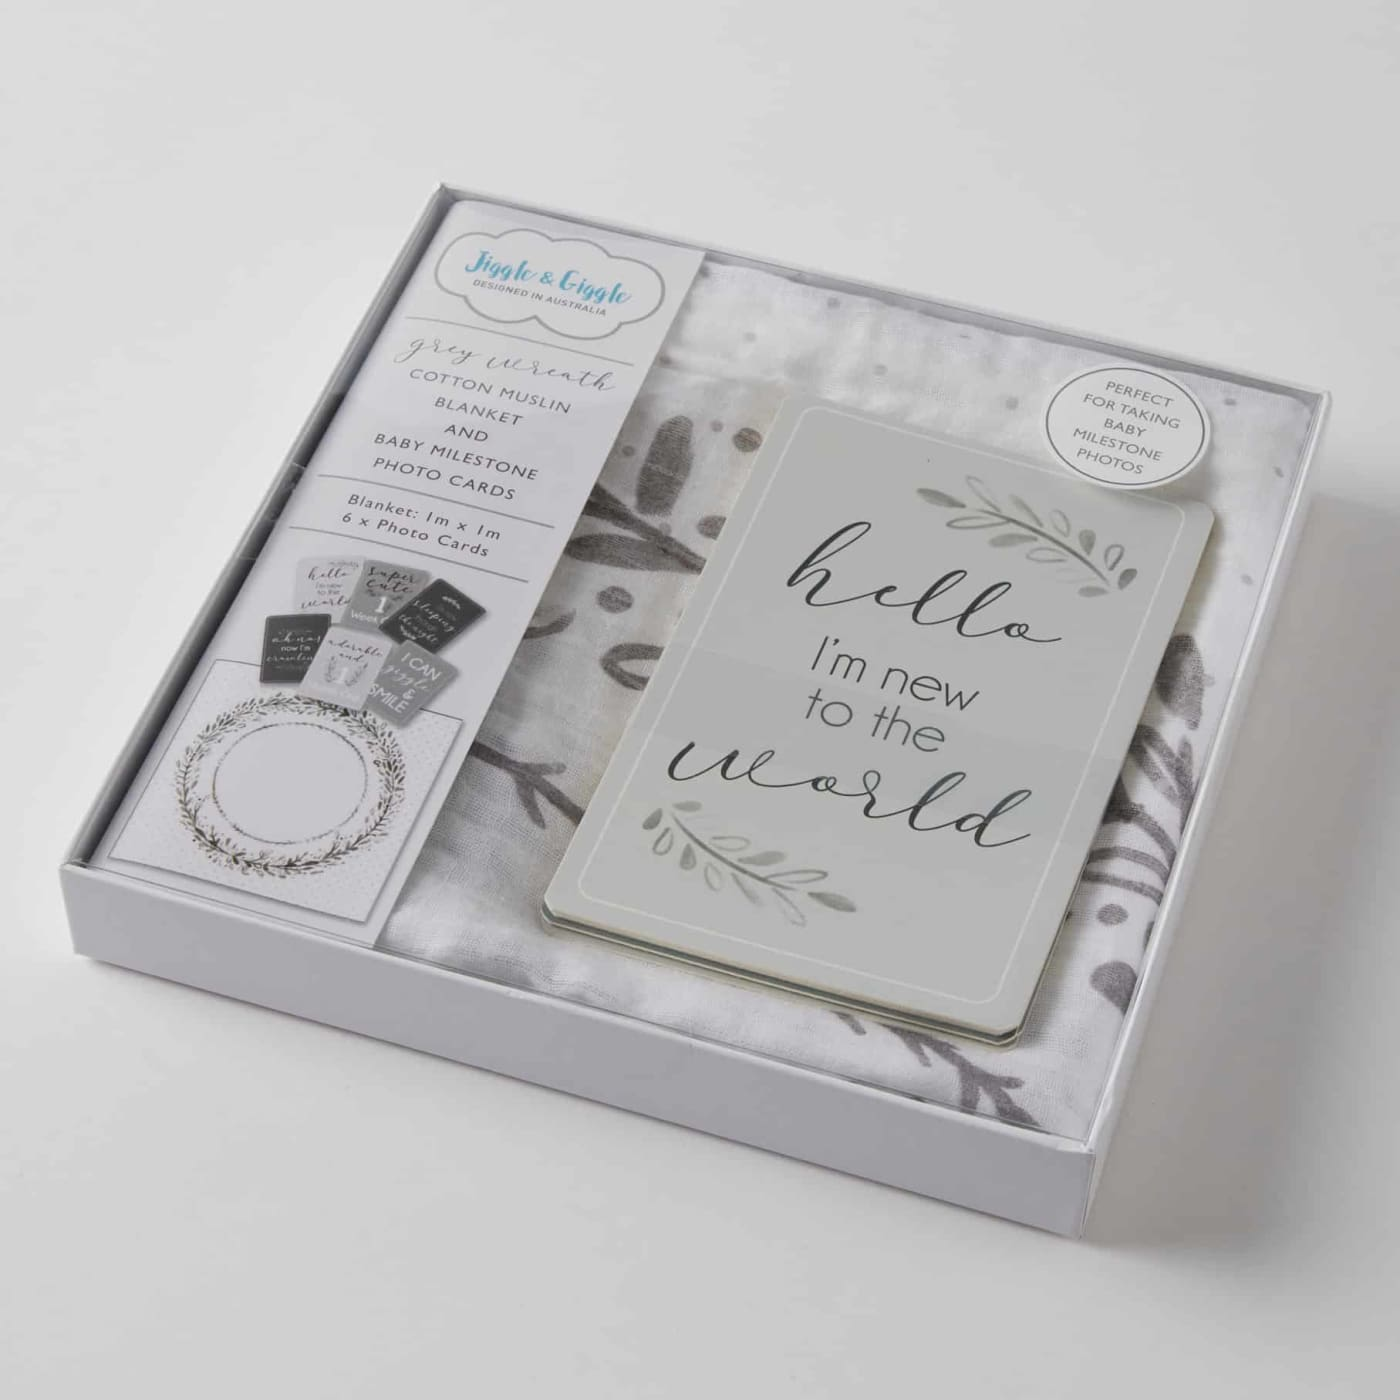 Jiggle & Giggle Milestone Cotton Muslin & Baby Photo Cards - Grey Wreath - Grey Wreath - GIFTWARE - MILESTONE BLOCKS/CARDS